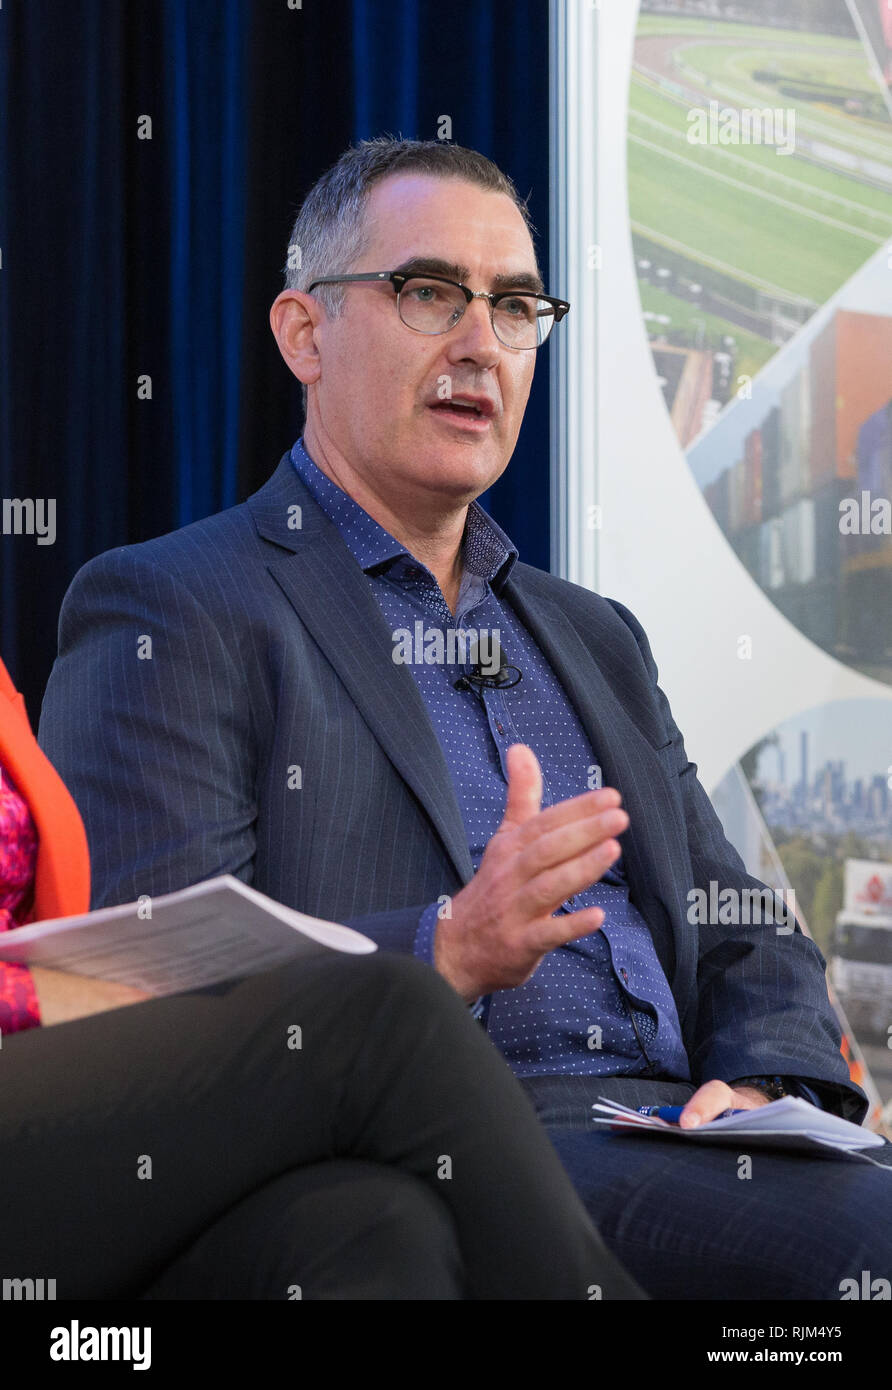 Virgin Australia CEO Paul Scurrah speaking at a business event in Sydney, 2018. - Stock Image